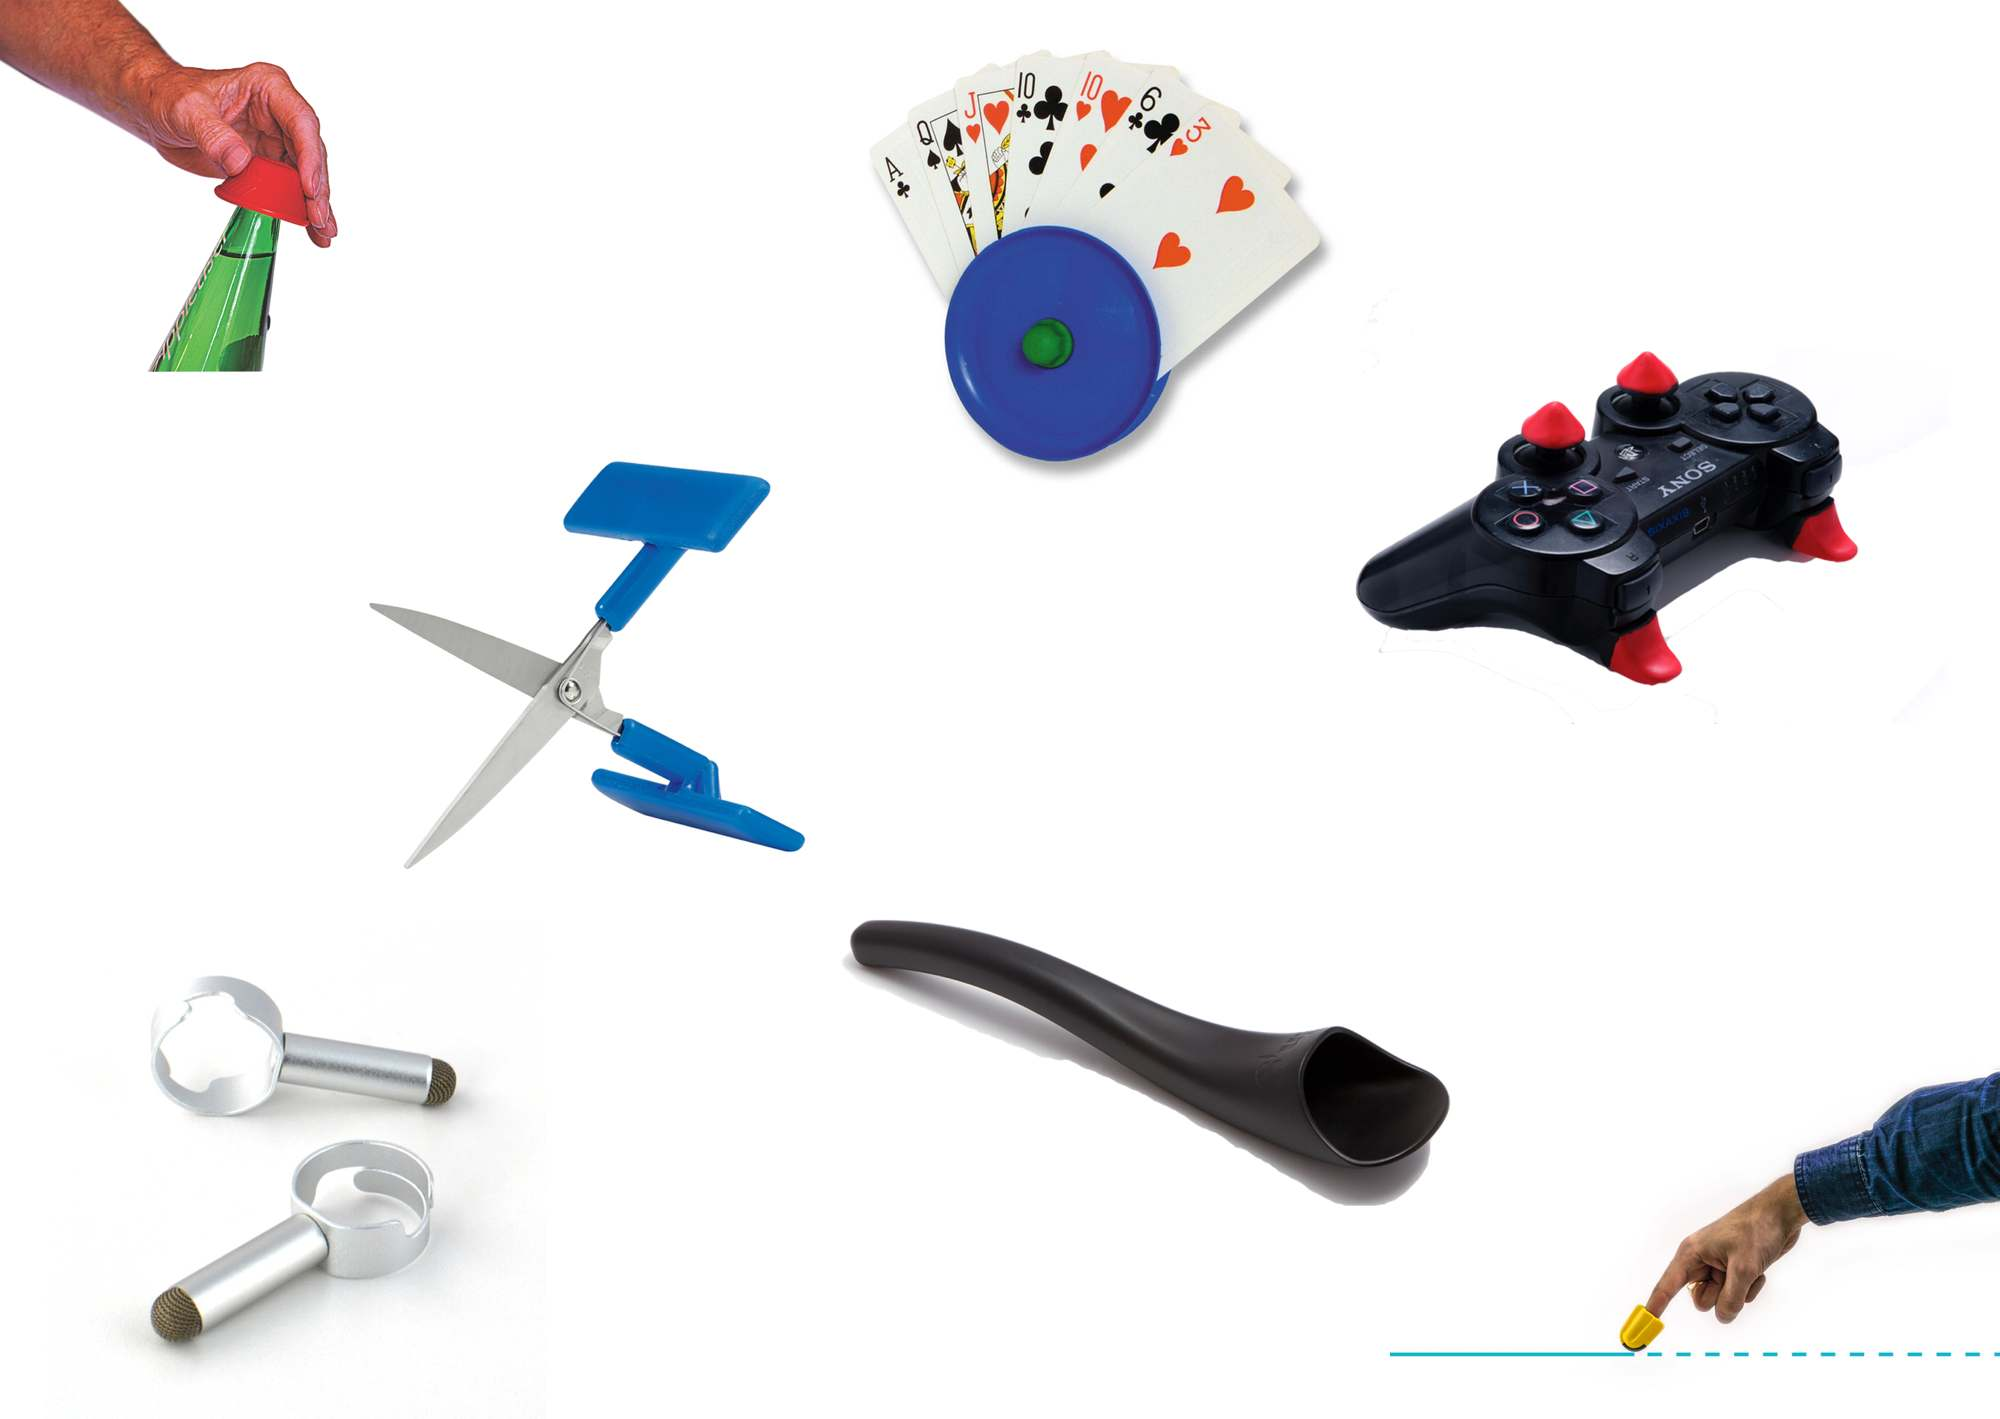 Disability products that other people make - occupational therapy tools for hands